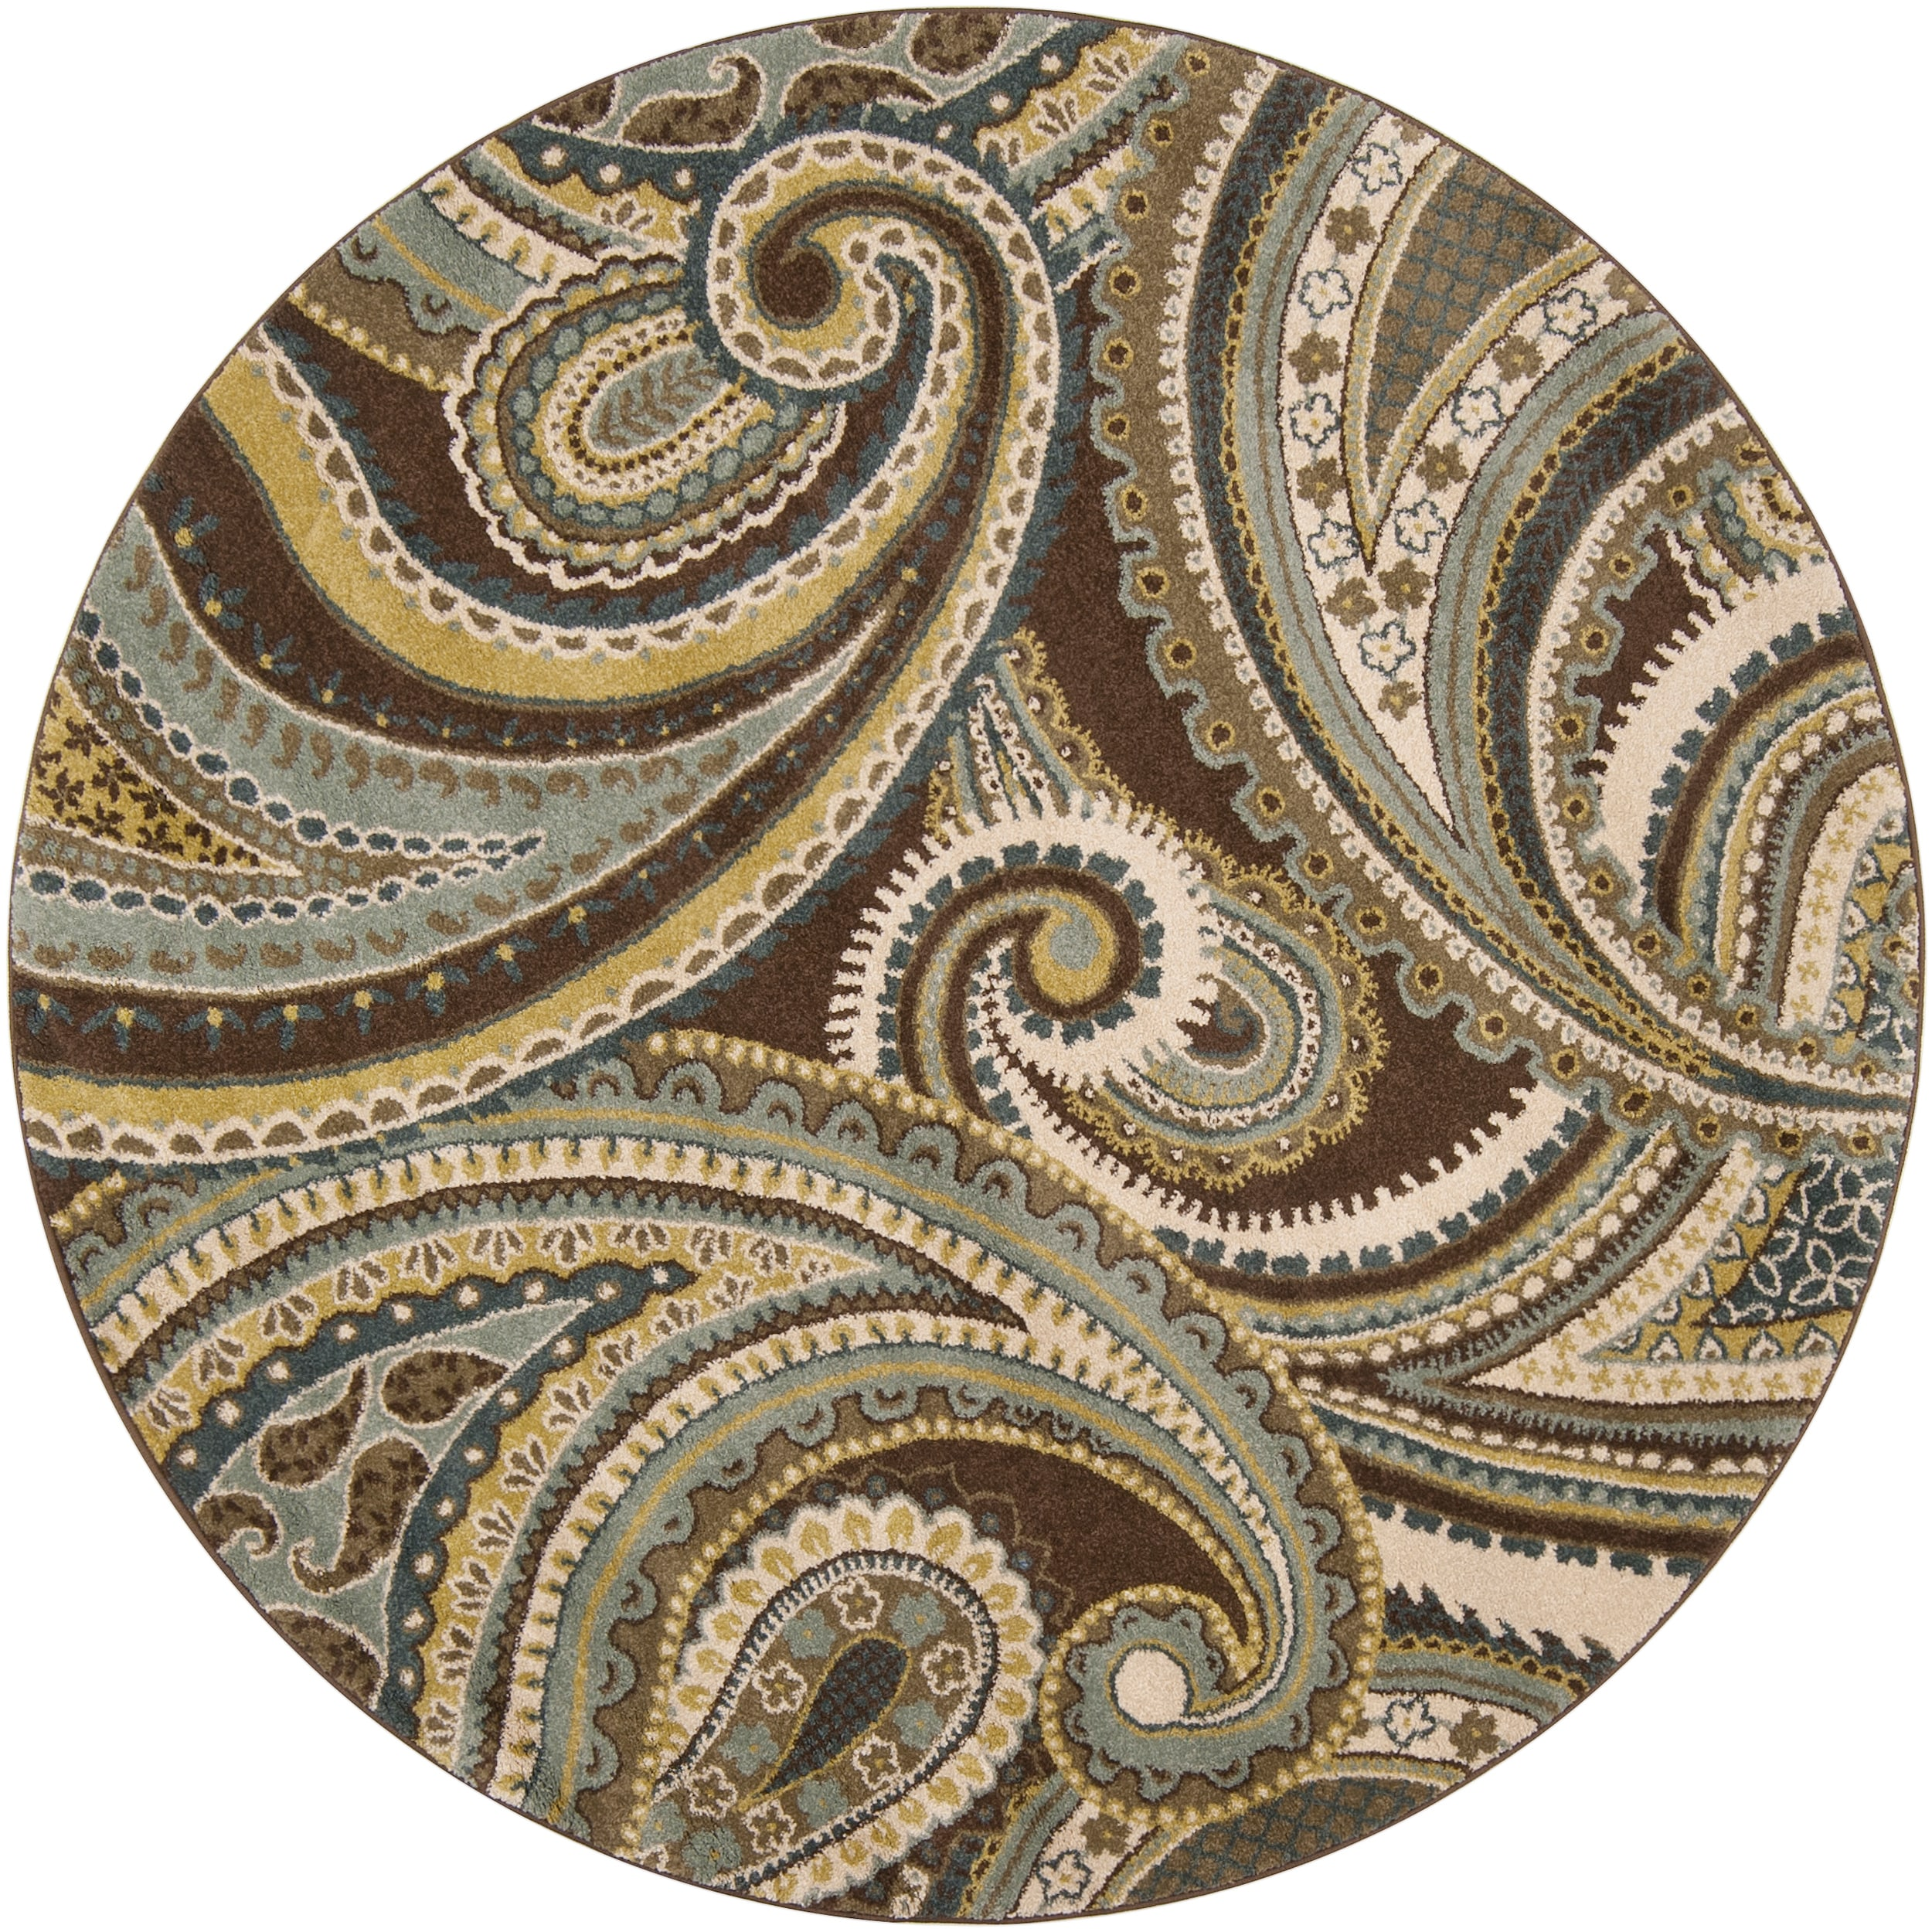 Meticulously Woven Contemporary Brown/Green Paisley Floral